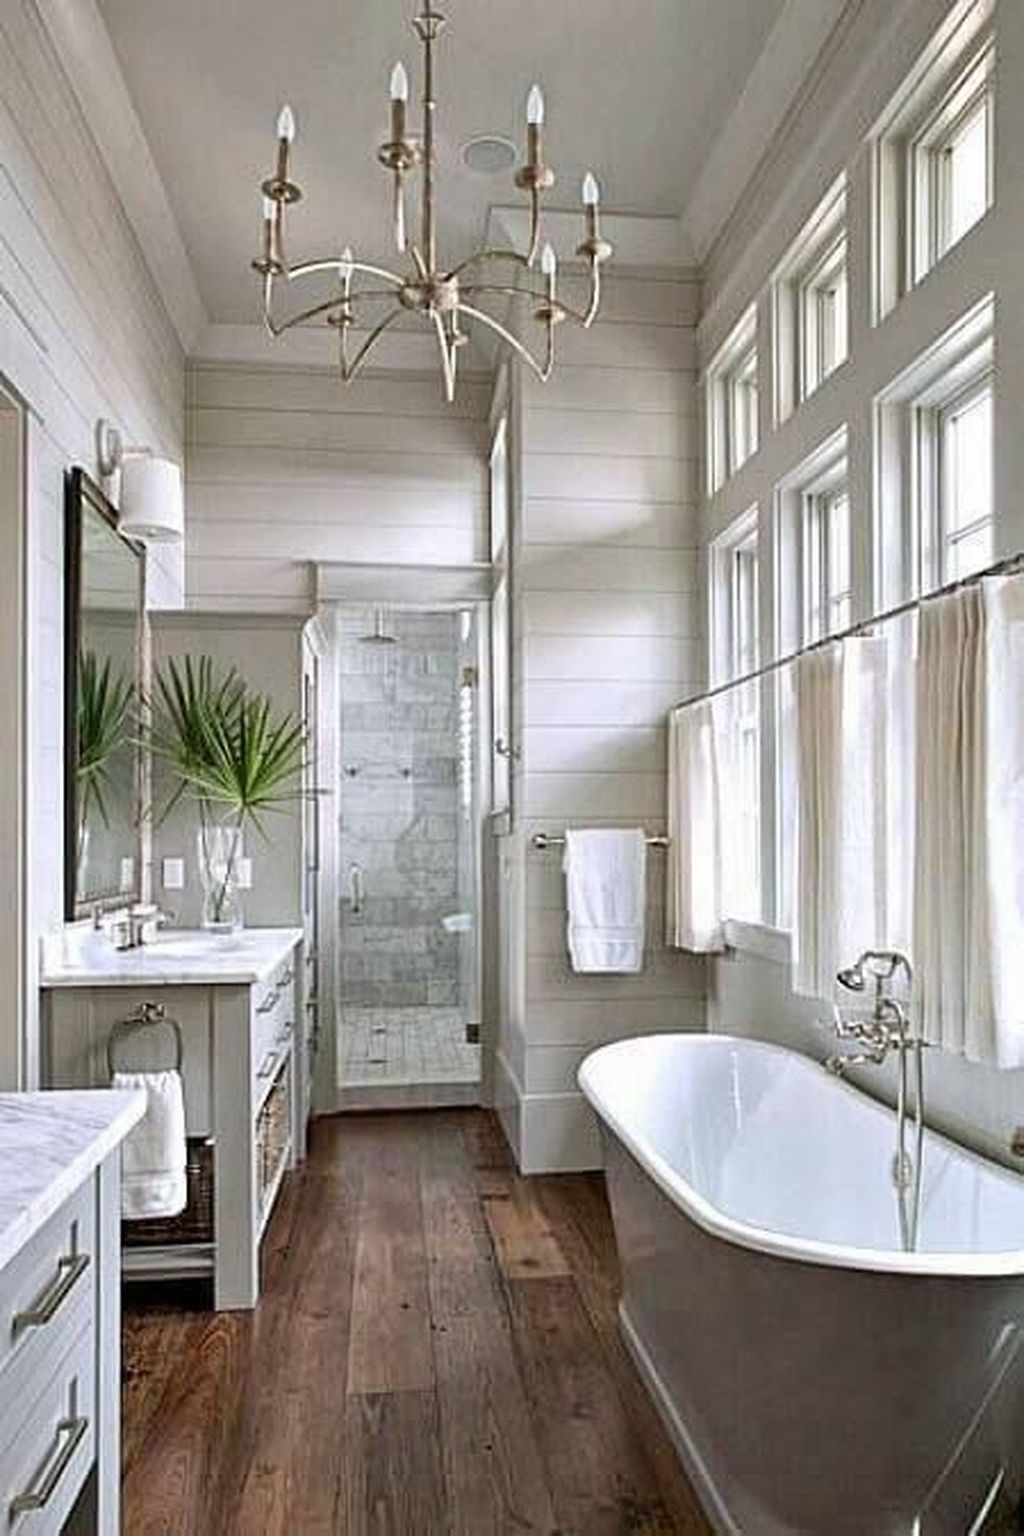 Inspiring Unique Bathroom Ideas That You Should Try 35